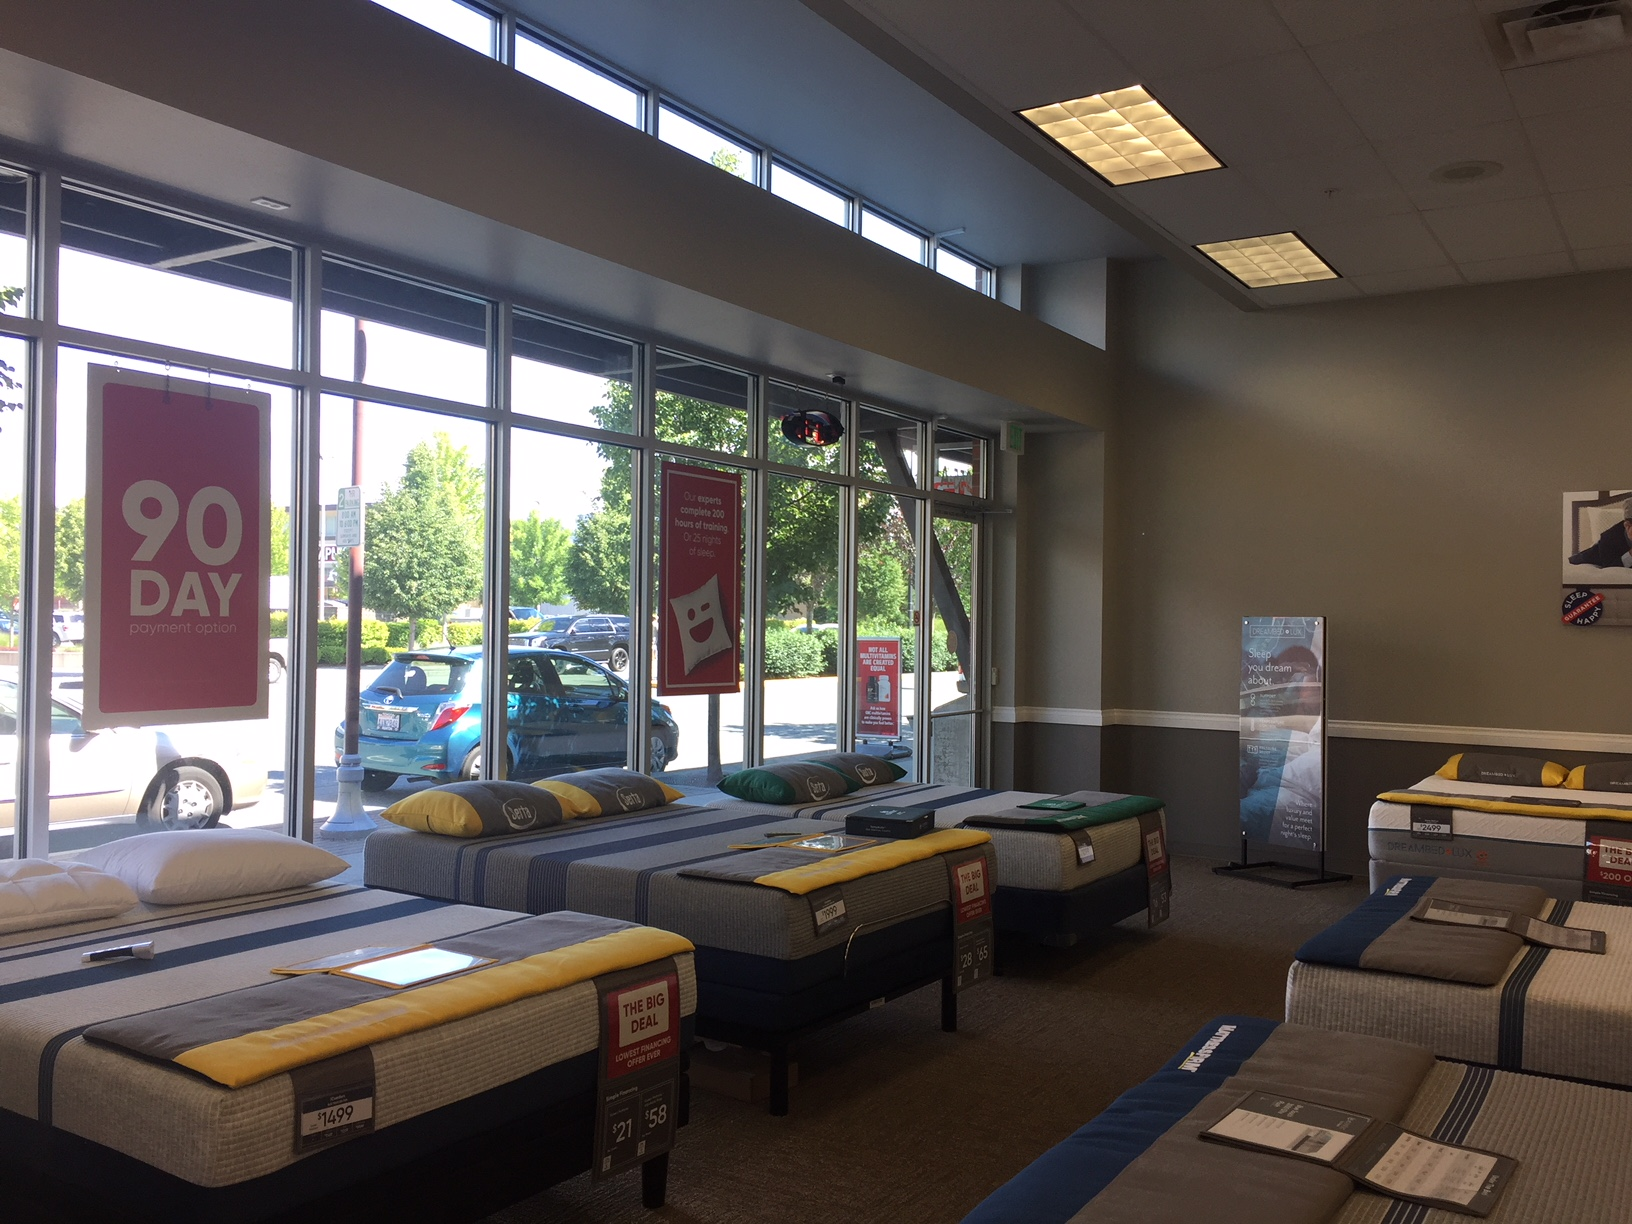 Mattress Firm The Landing image 5